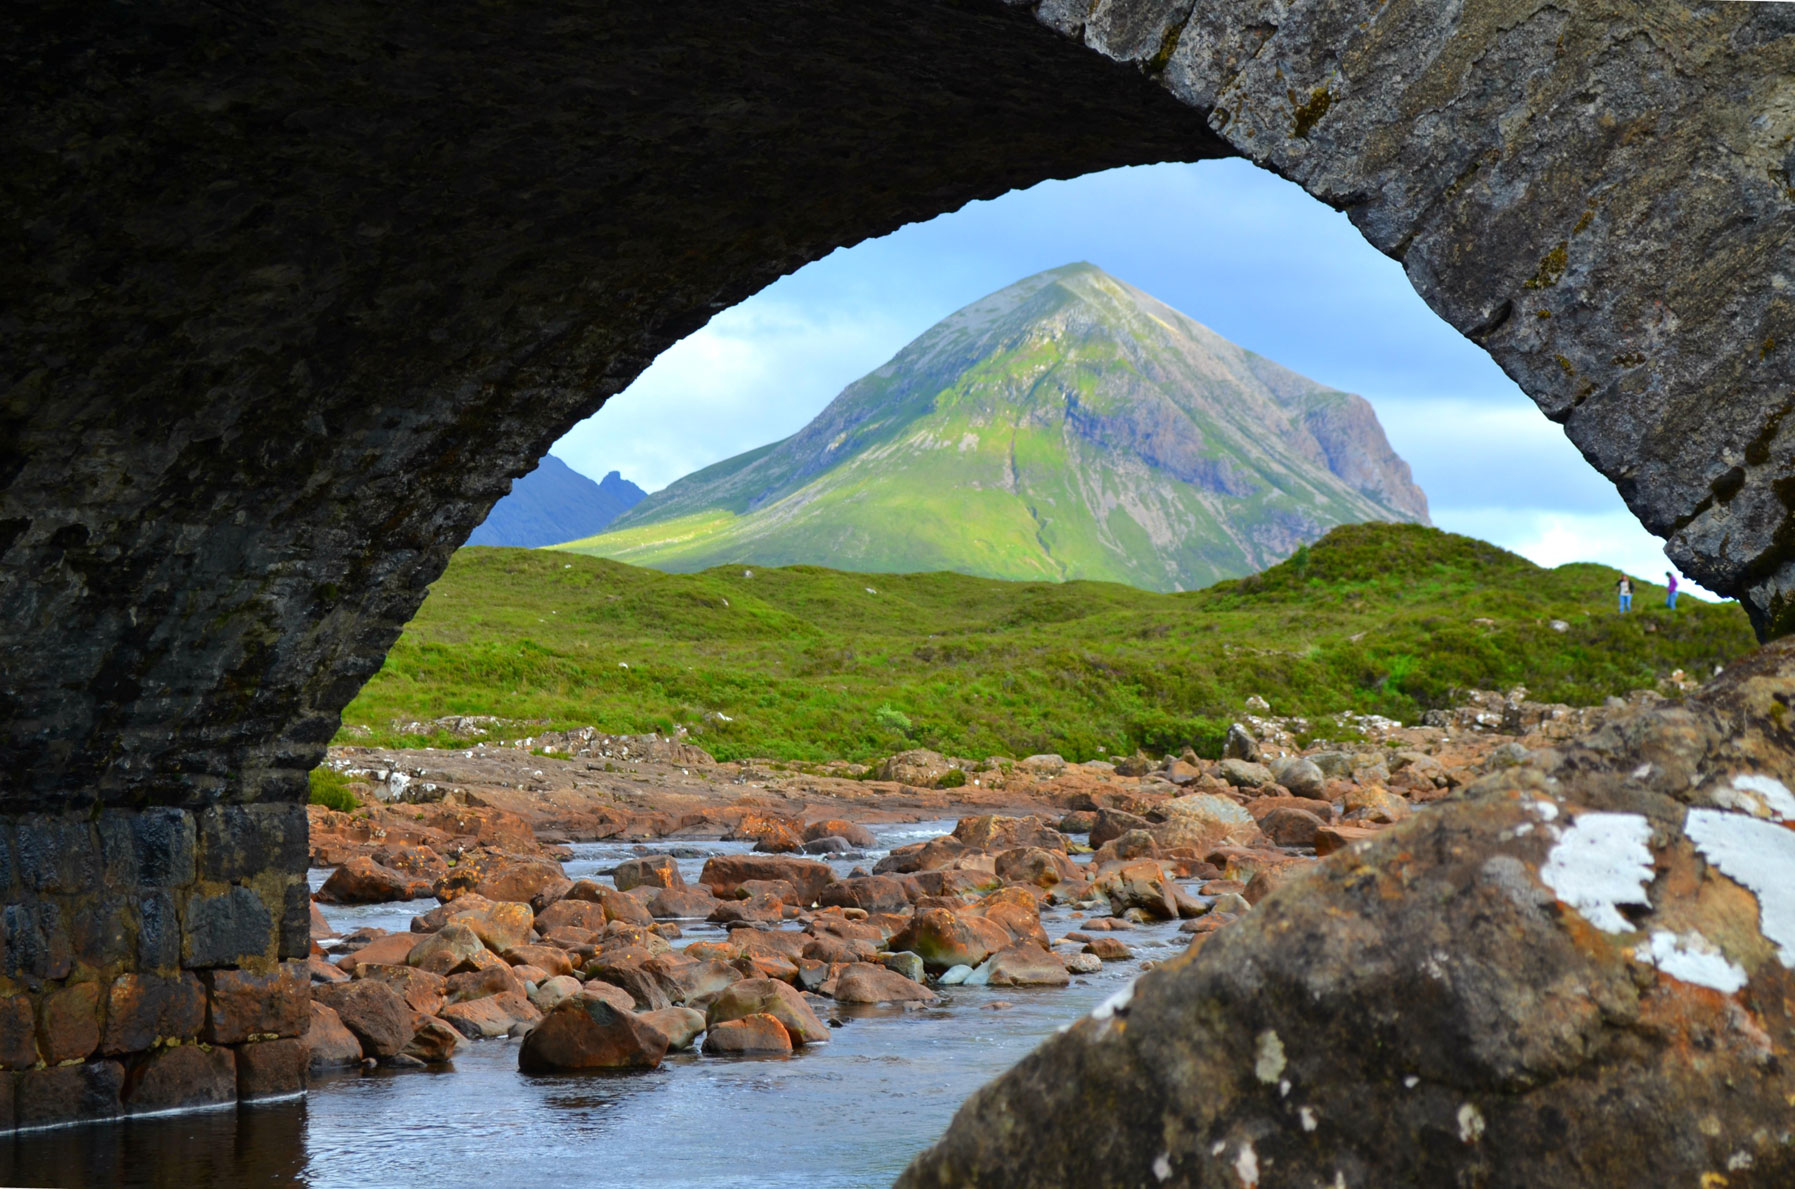 The mountain under the bridge